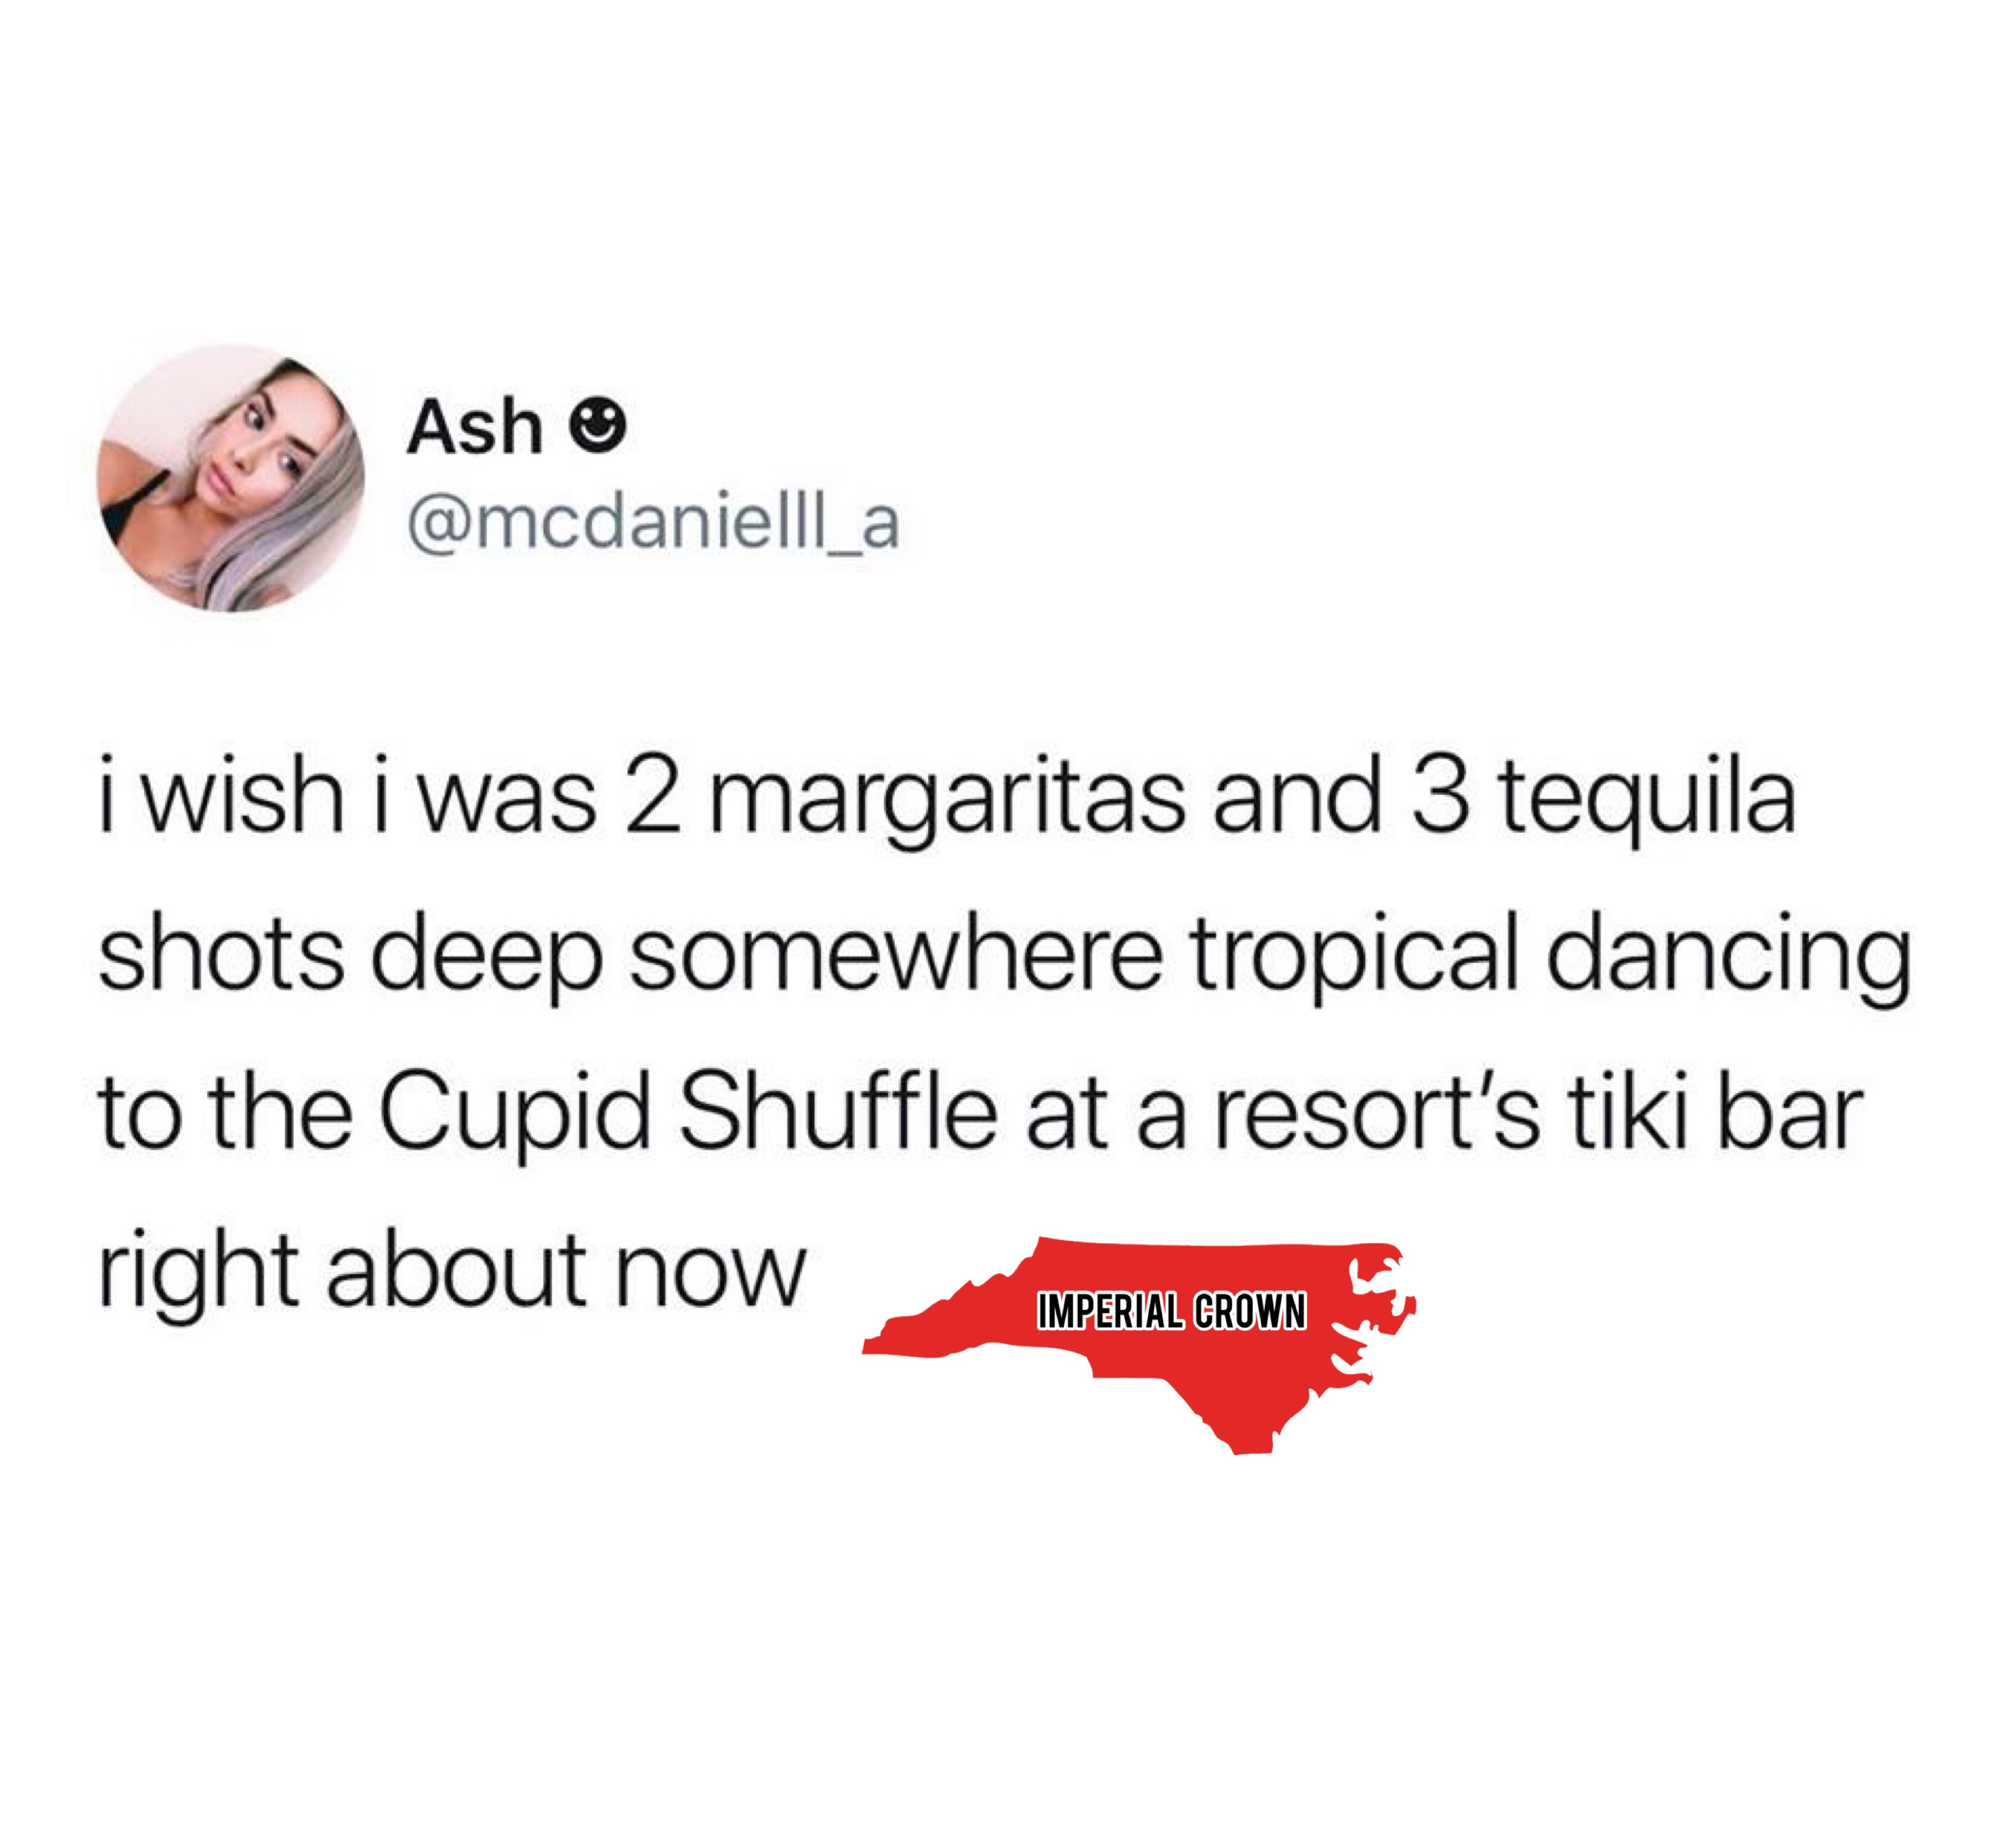 I wish I was 2 margaritas and 3 tequila shots deep somewhere tropical dancing…..